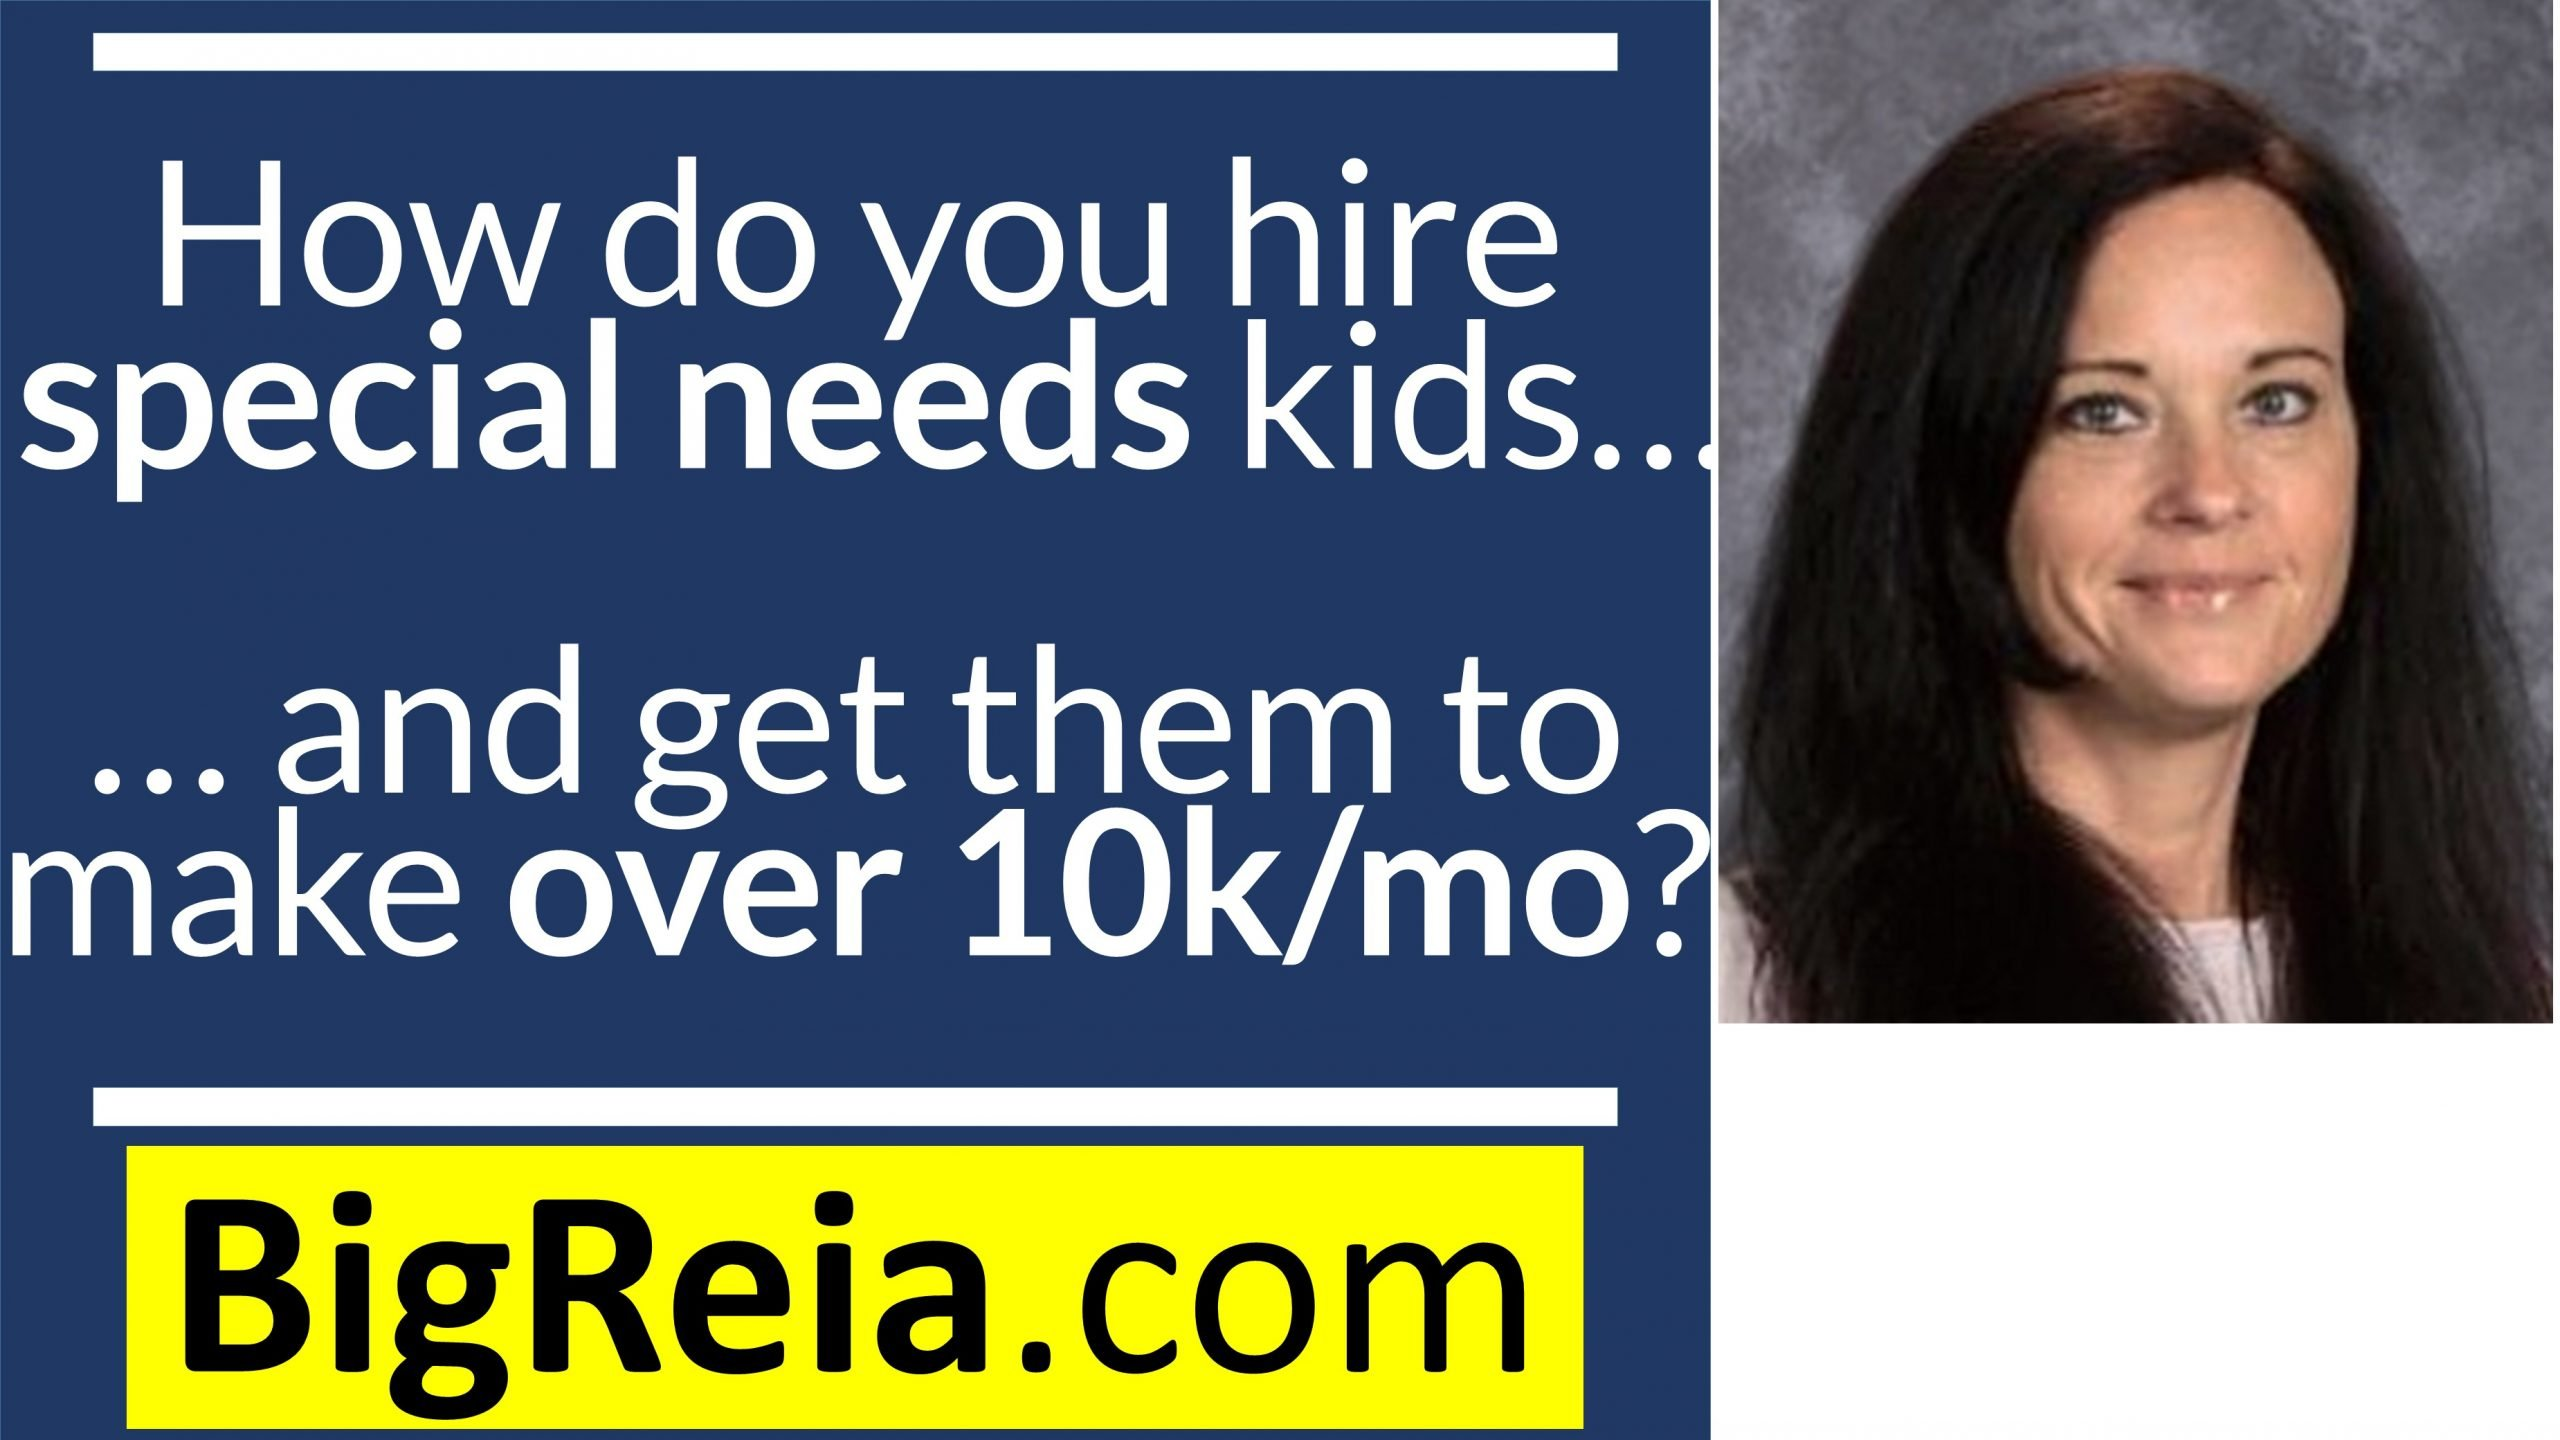 How do we hire special needs kids and have them make $10k/mo in real estate and business, and how you can too.